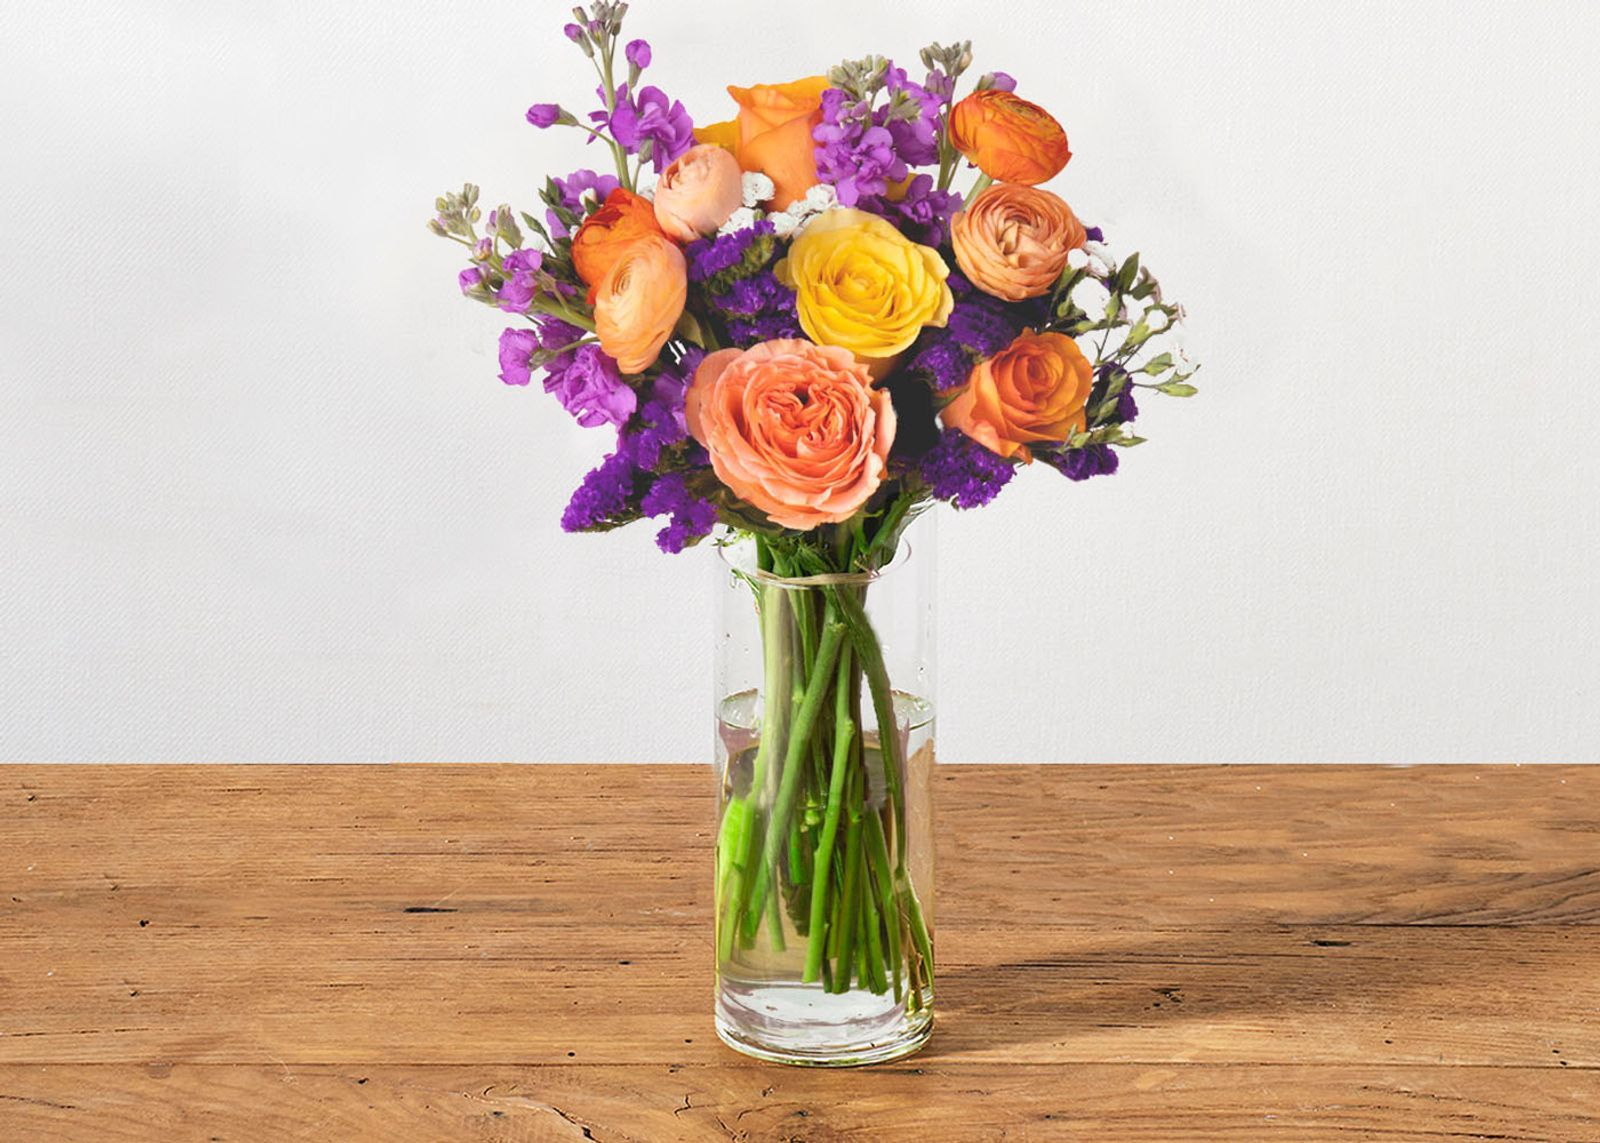 How to make a bouquet out of fresh flowers at home depot